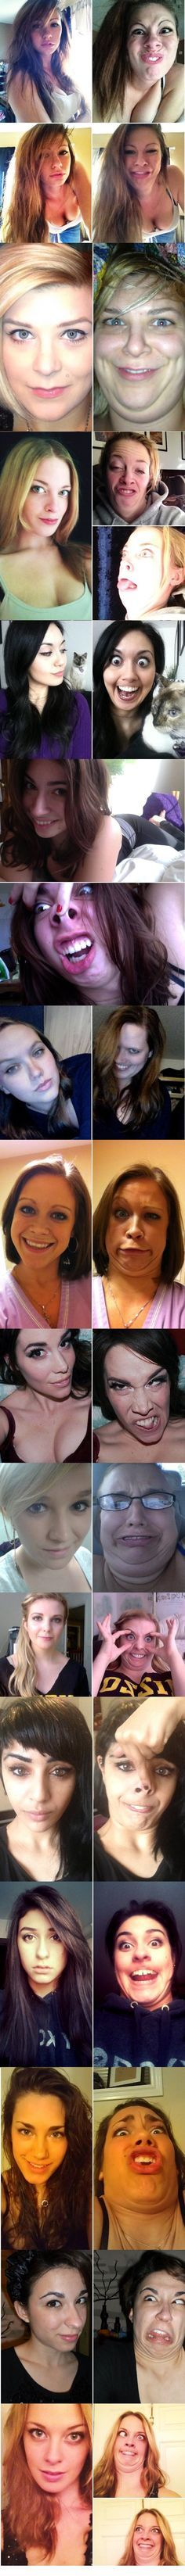 Pretty girls making ugly face | Dont Stop Smiling